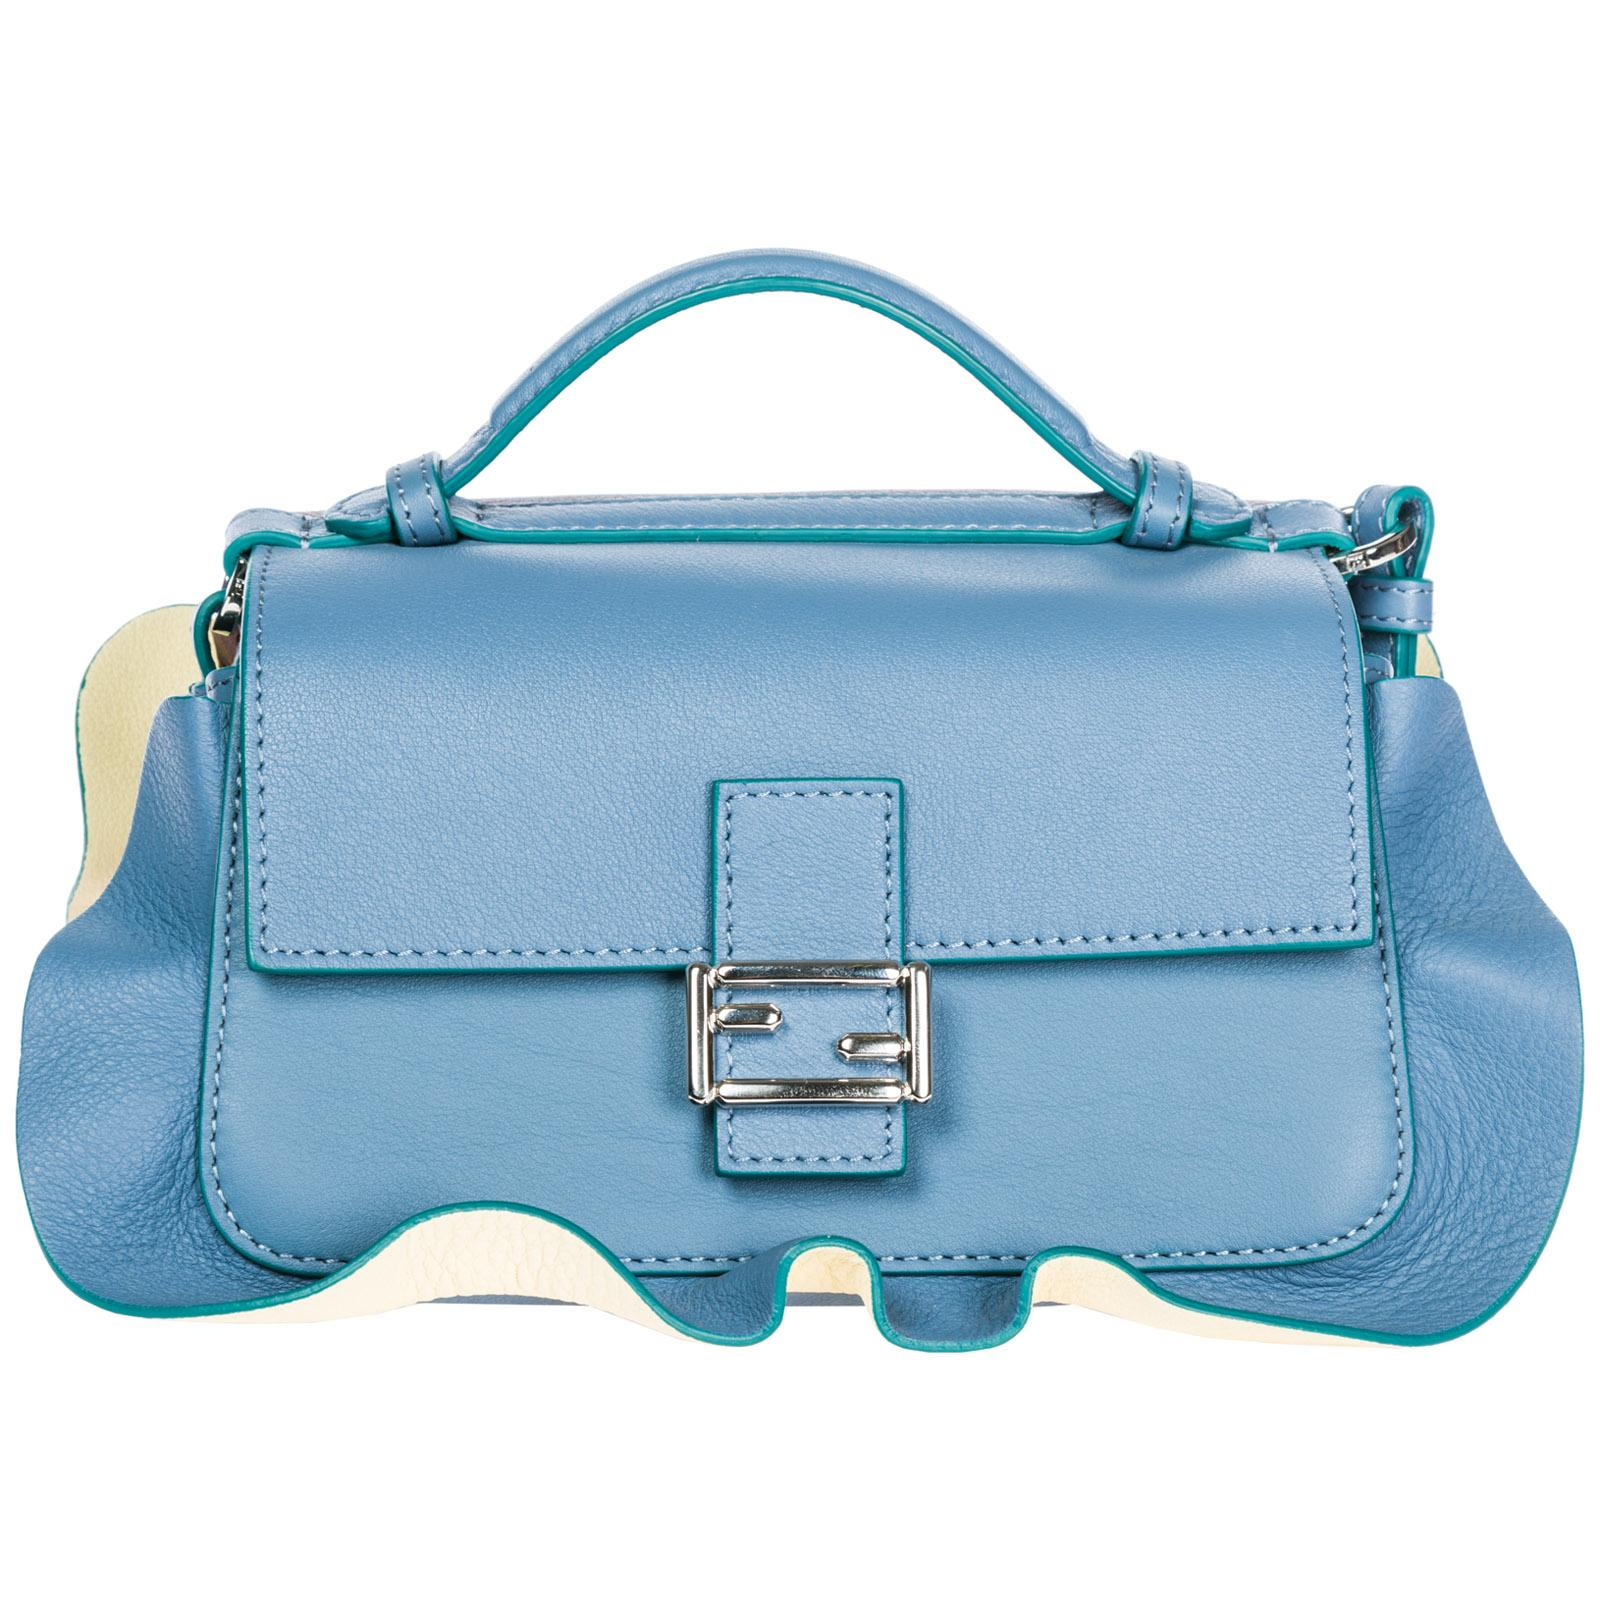 20dff59456 Fendi Women's Leather Shoulder Bag Doppia Micro Baguette In Blue ...